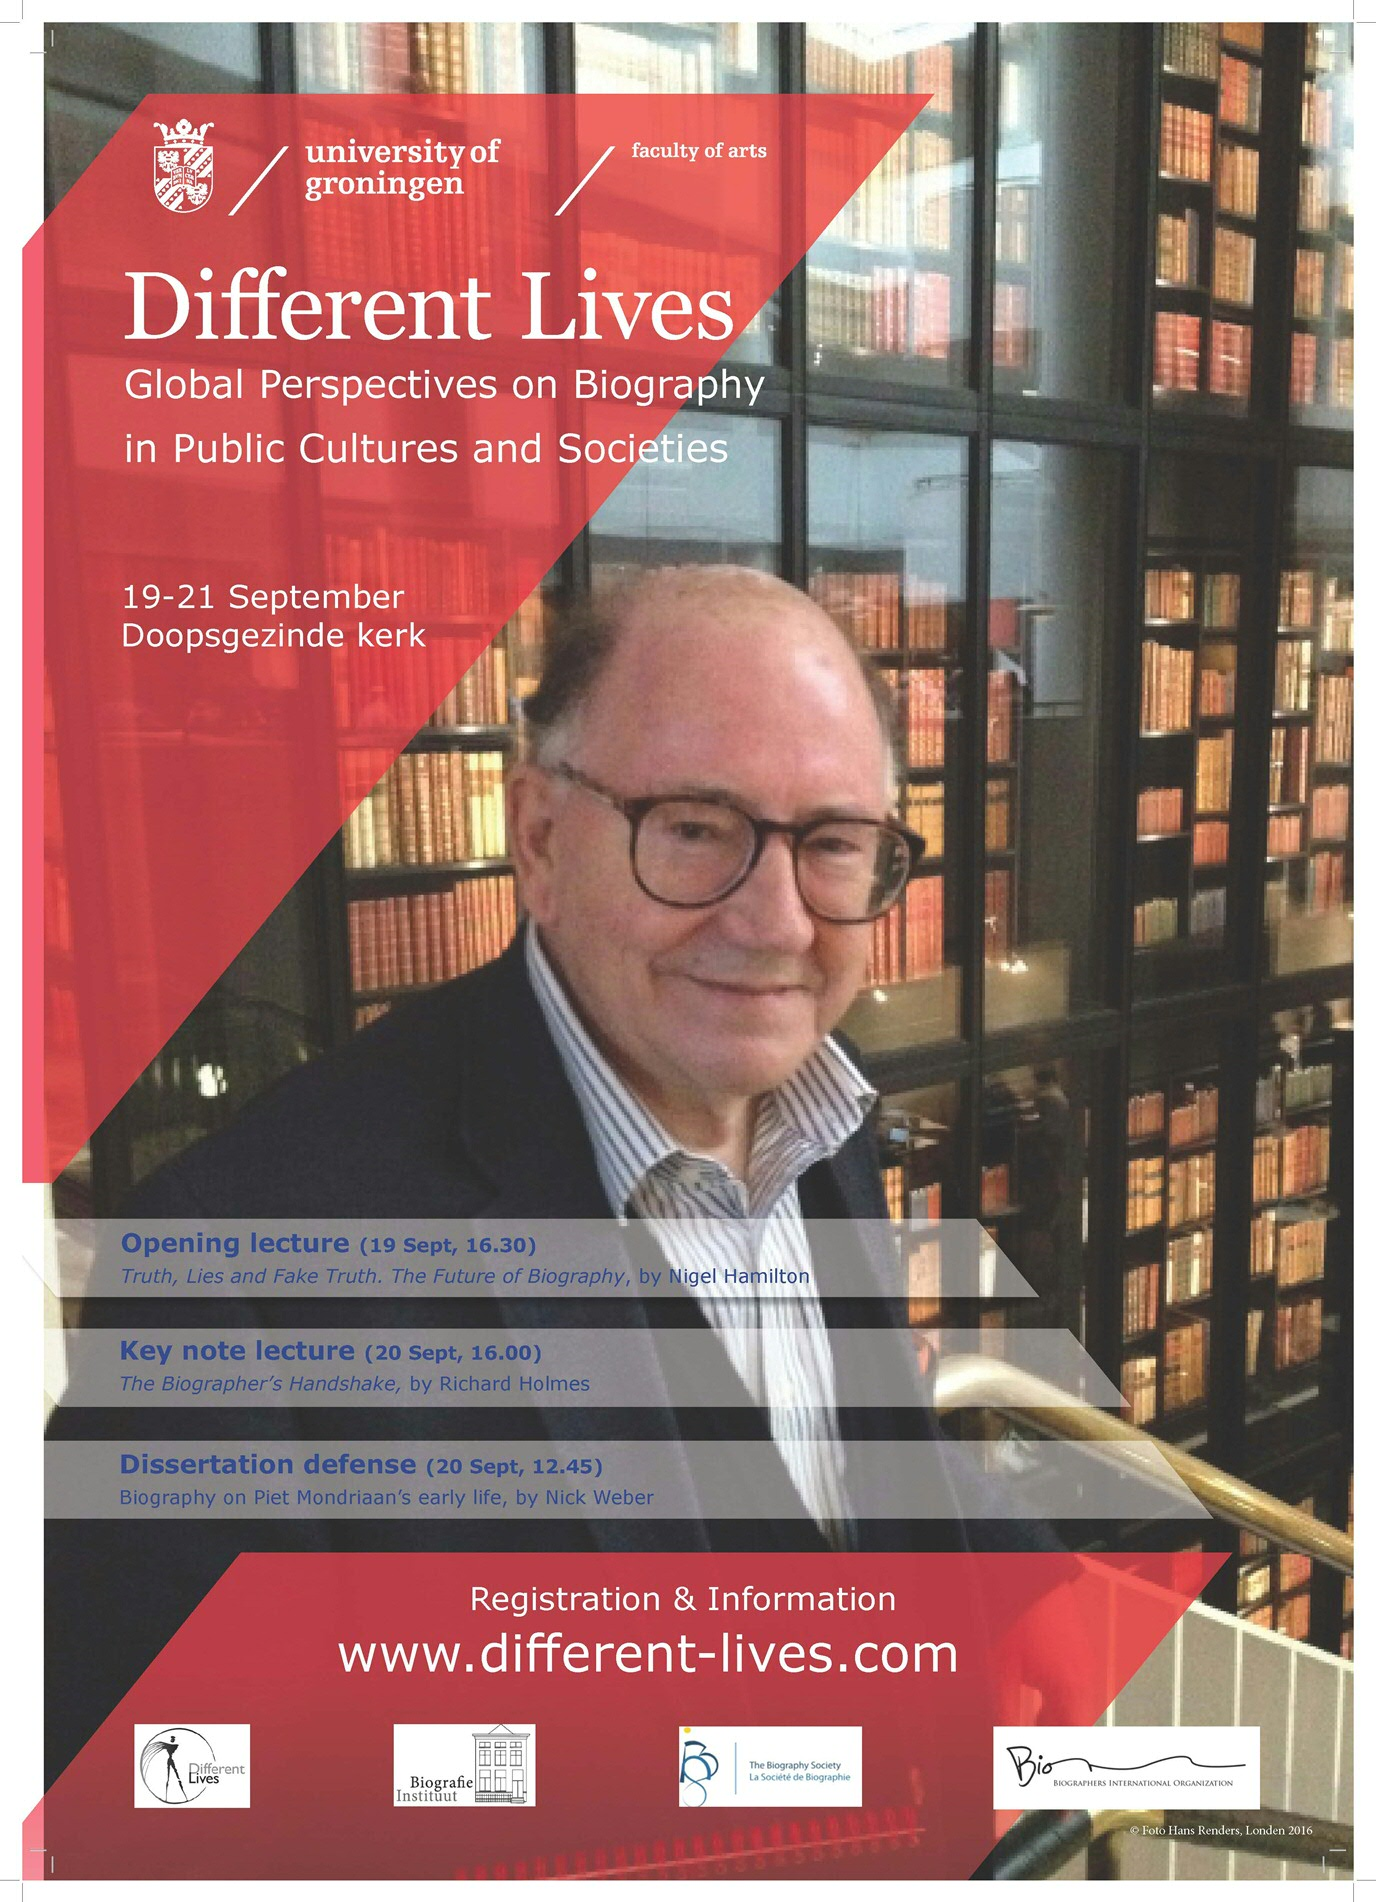 poster conferentie Different Lives